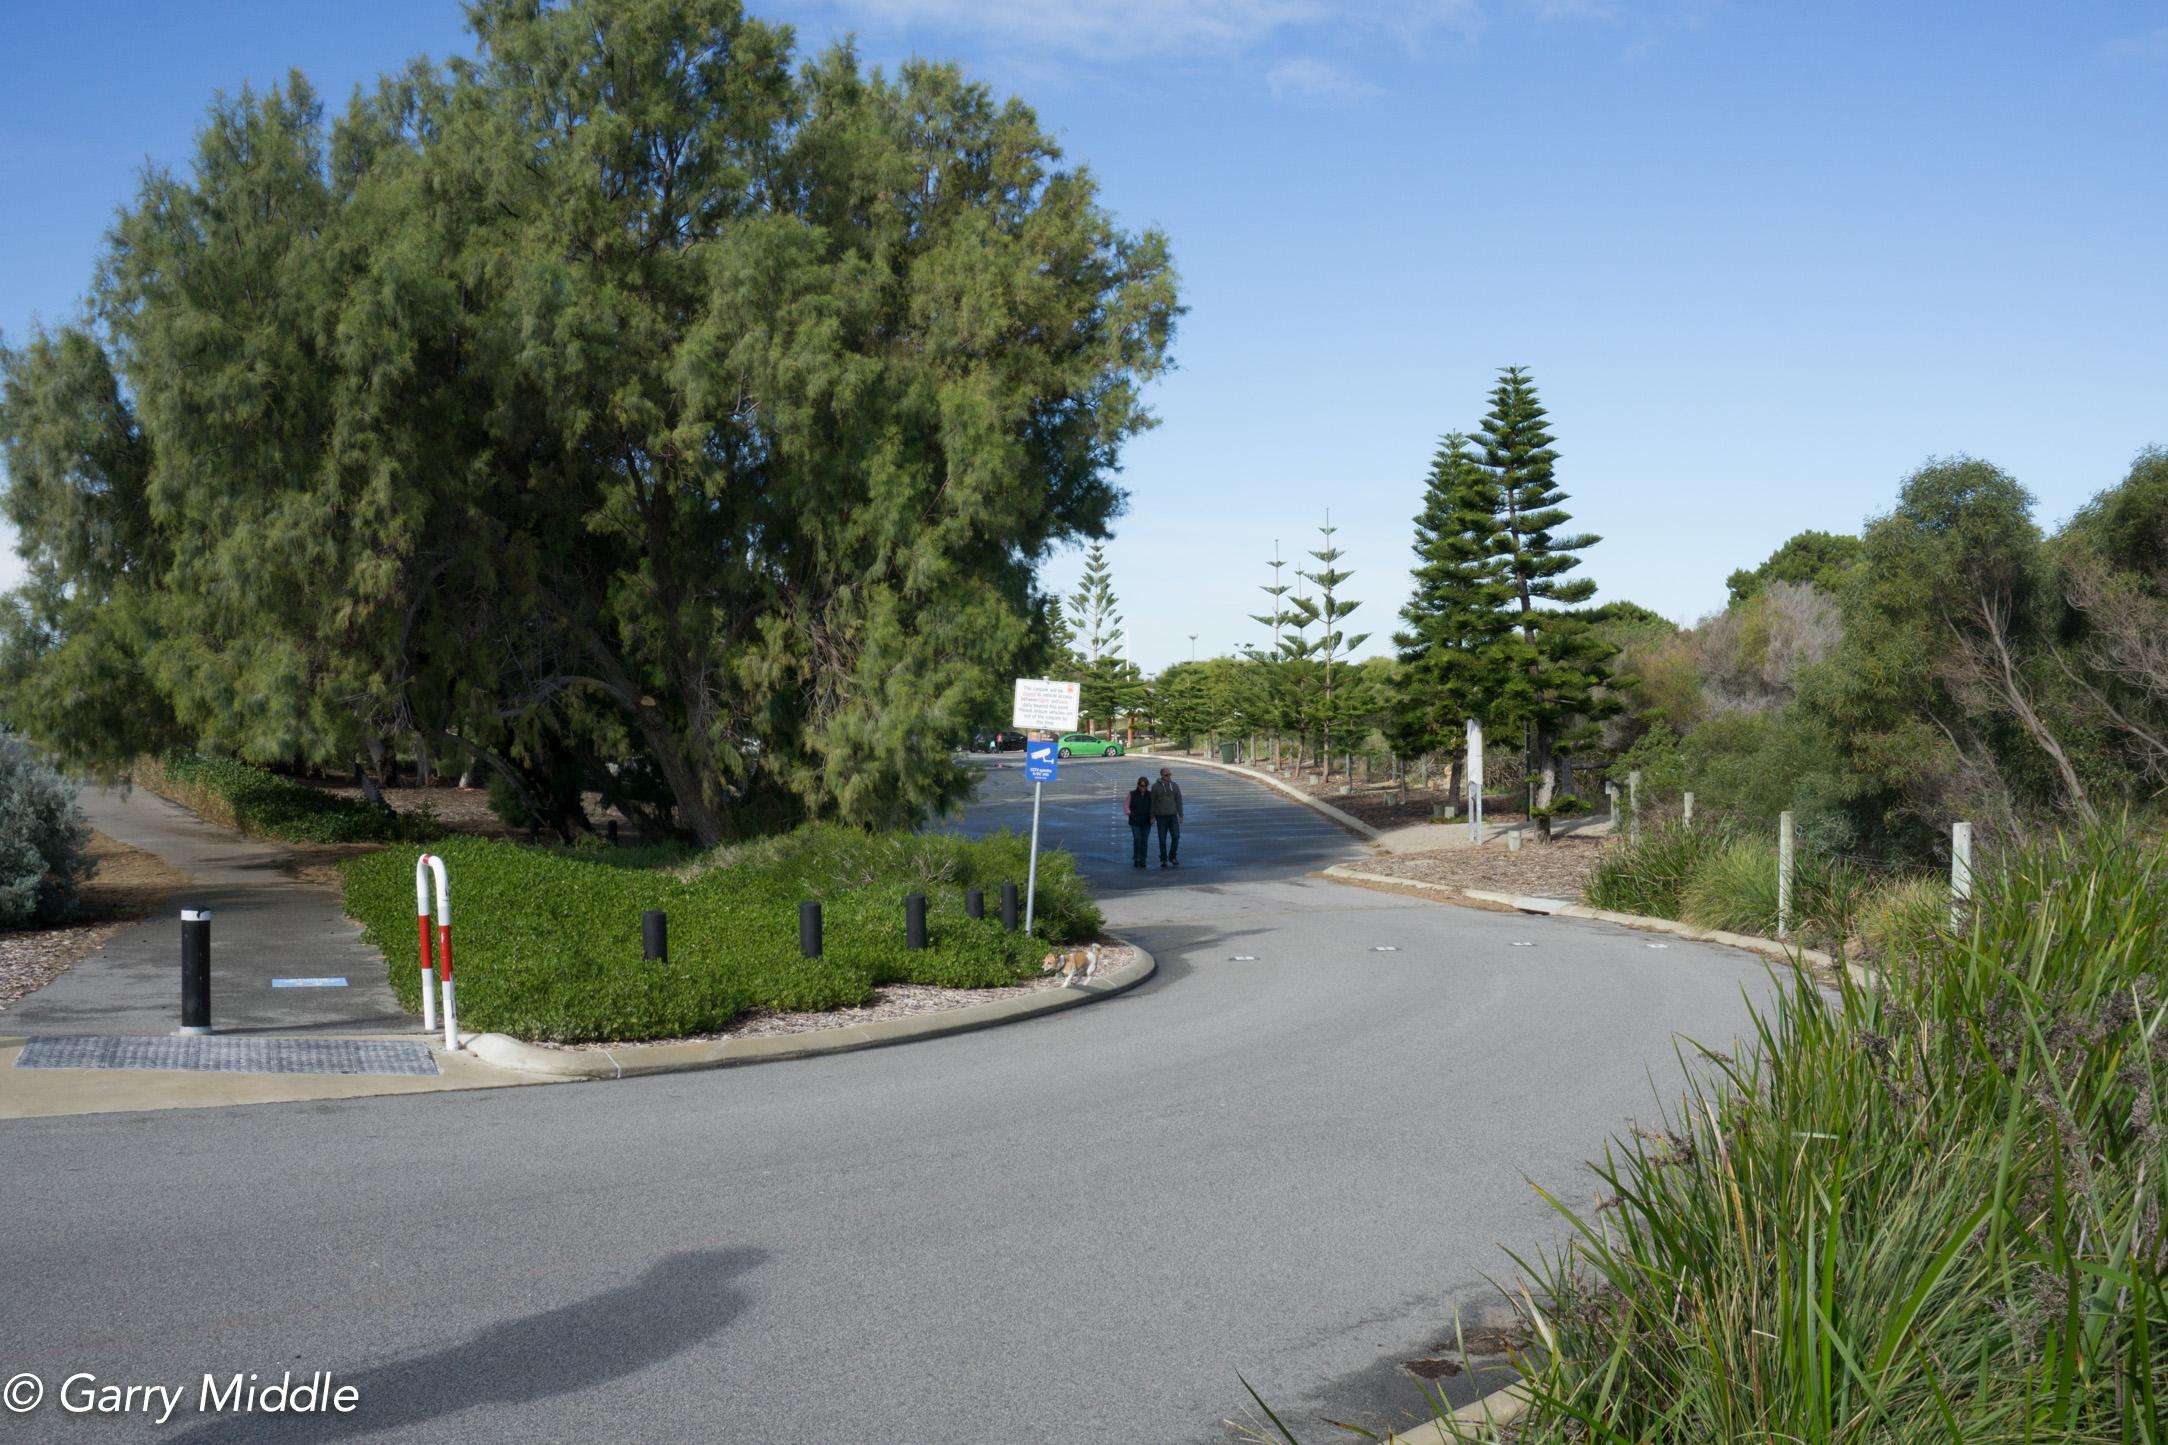 Plate 4: End of Path at the northern end of Coogee Beach carpark showing the short path that goes around the carpark